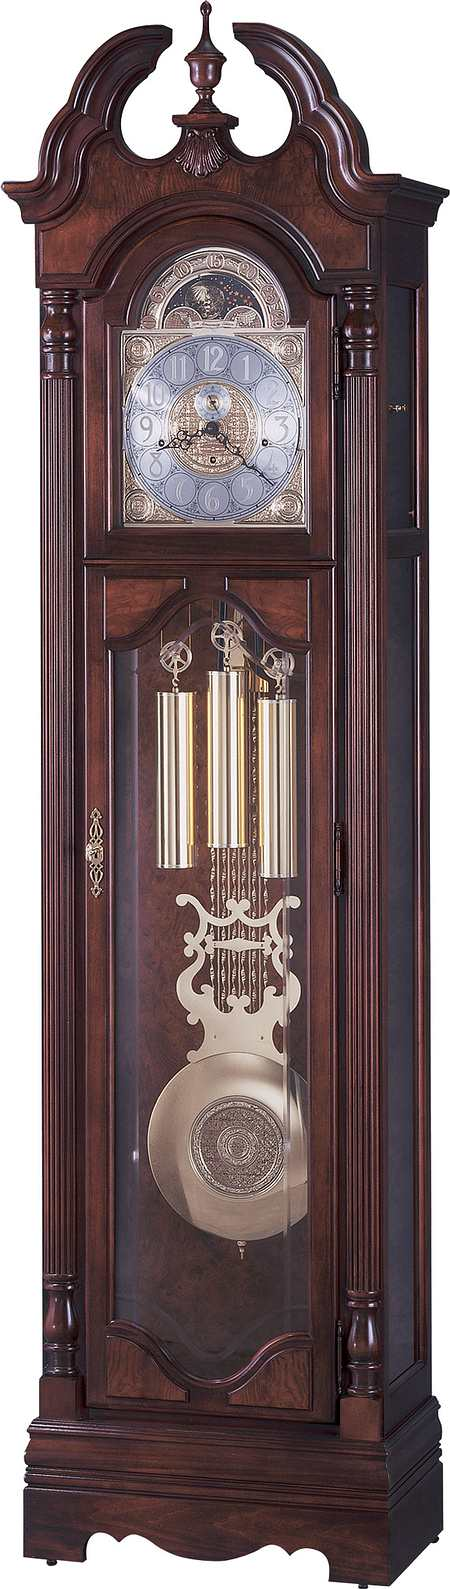 High Resolution Image of the Howard Miller Langston Grandfather Clock